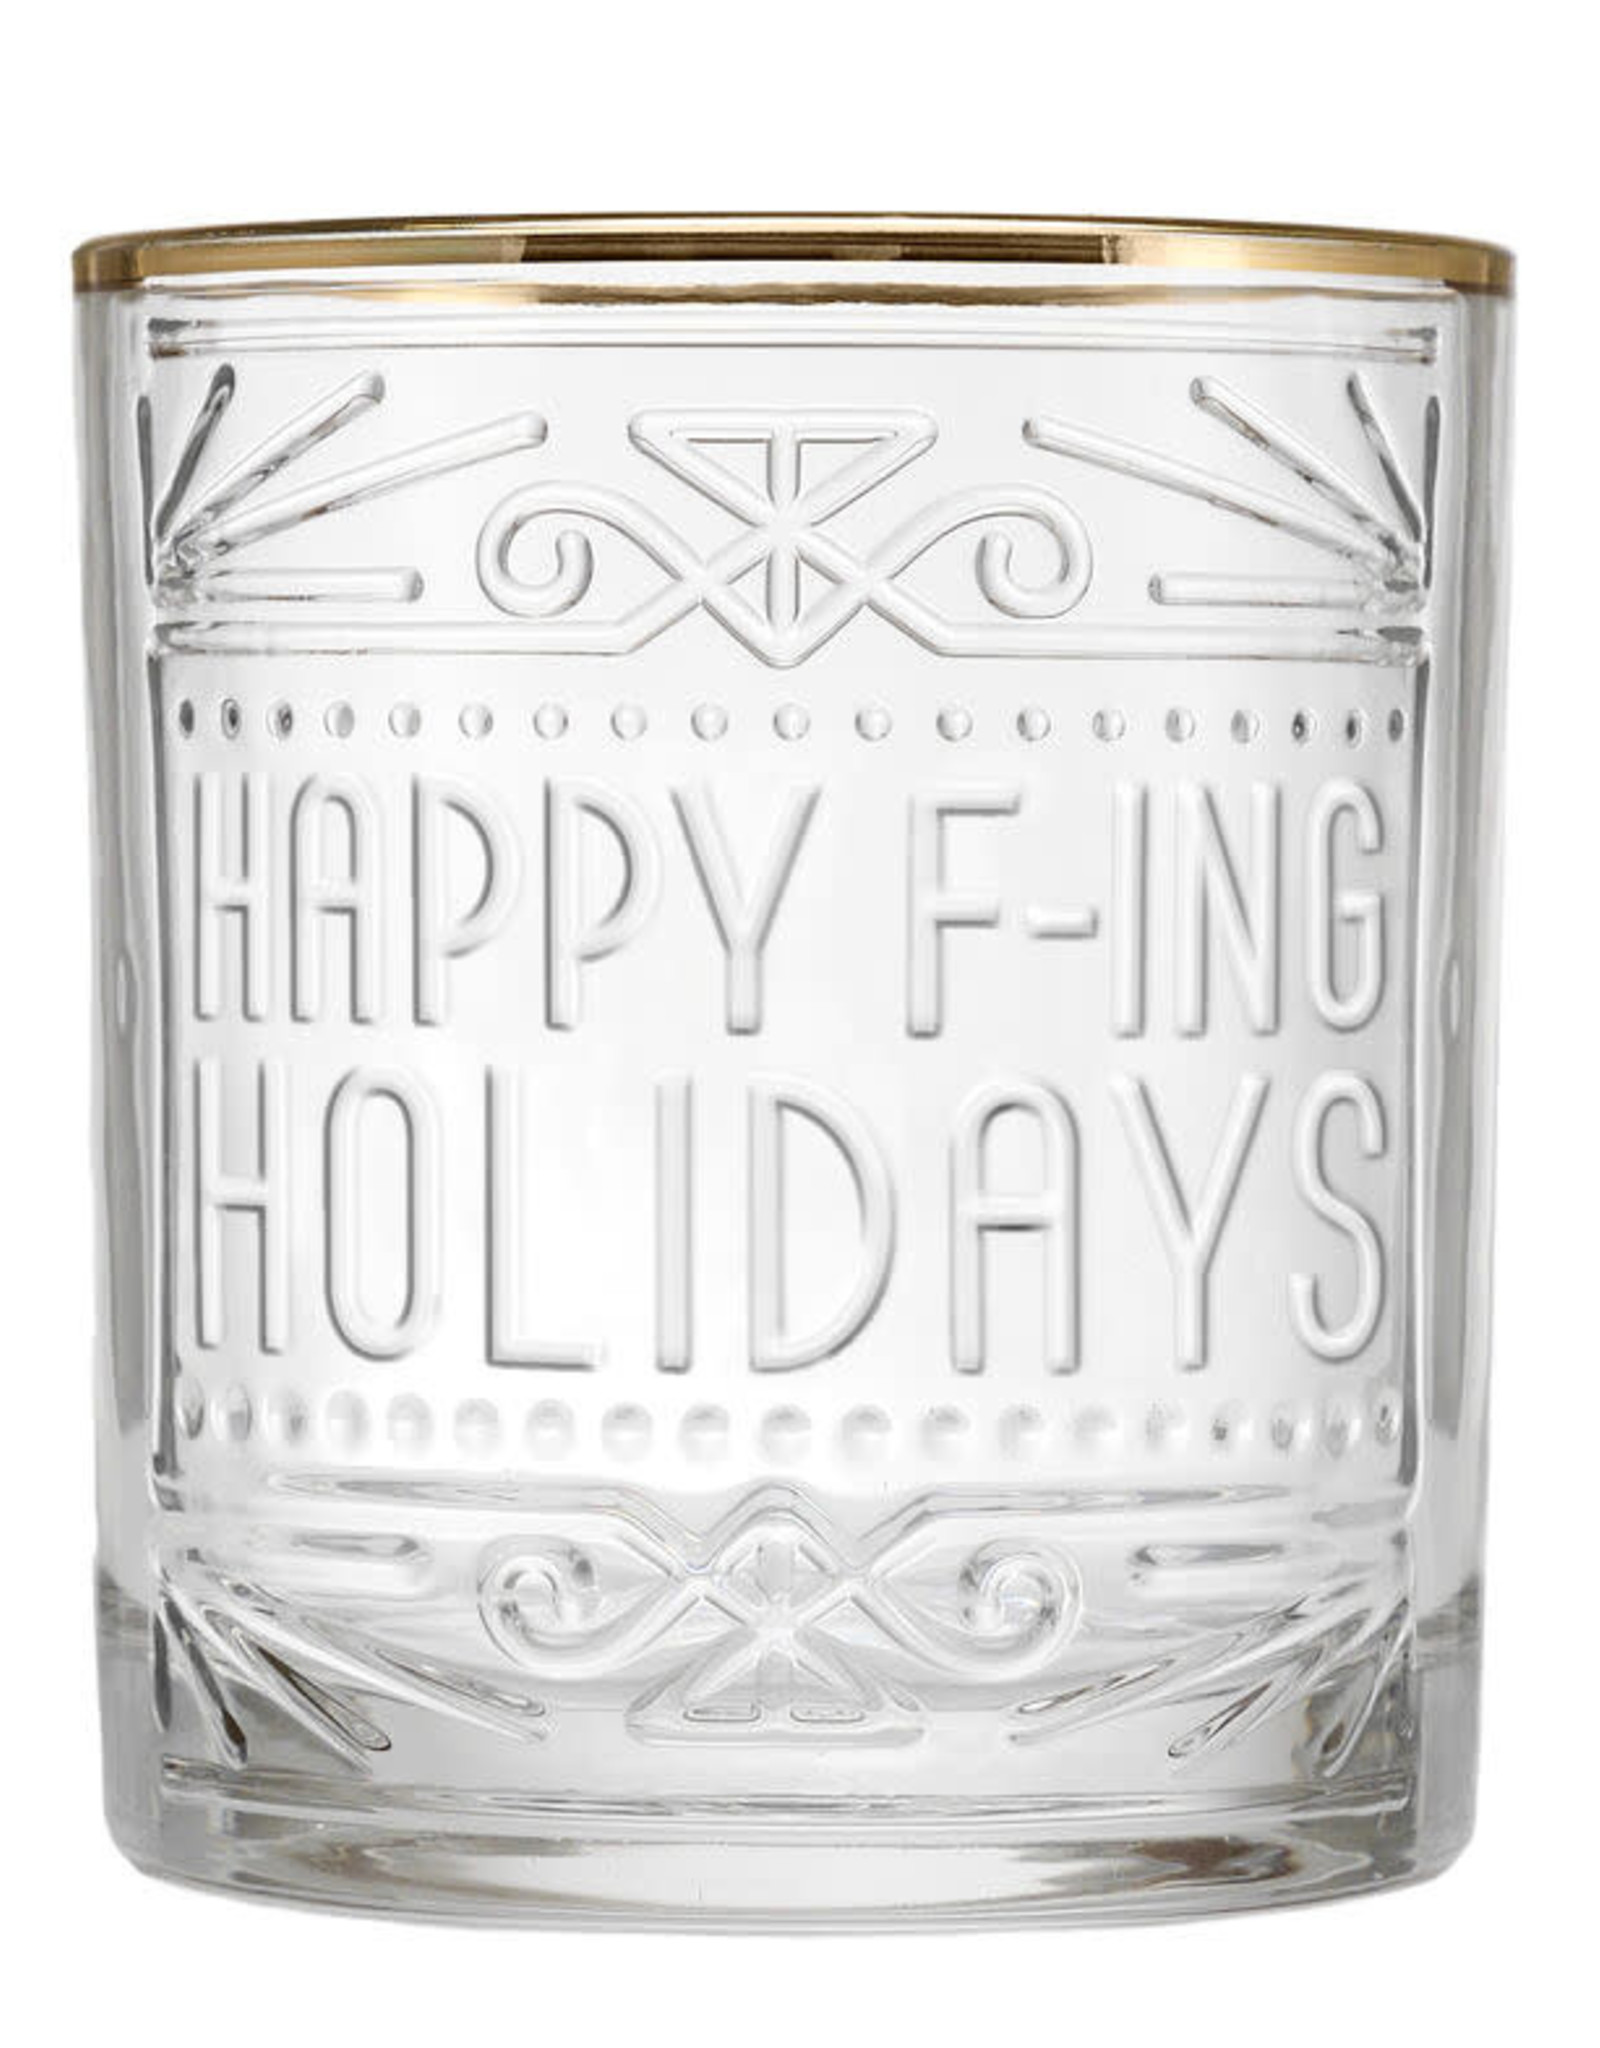 Happy F-ing Holidays Lowball Glass